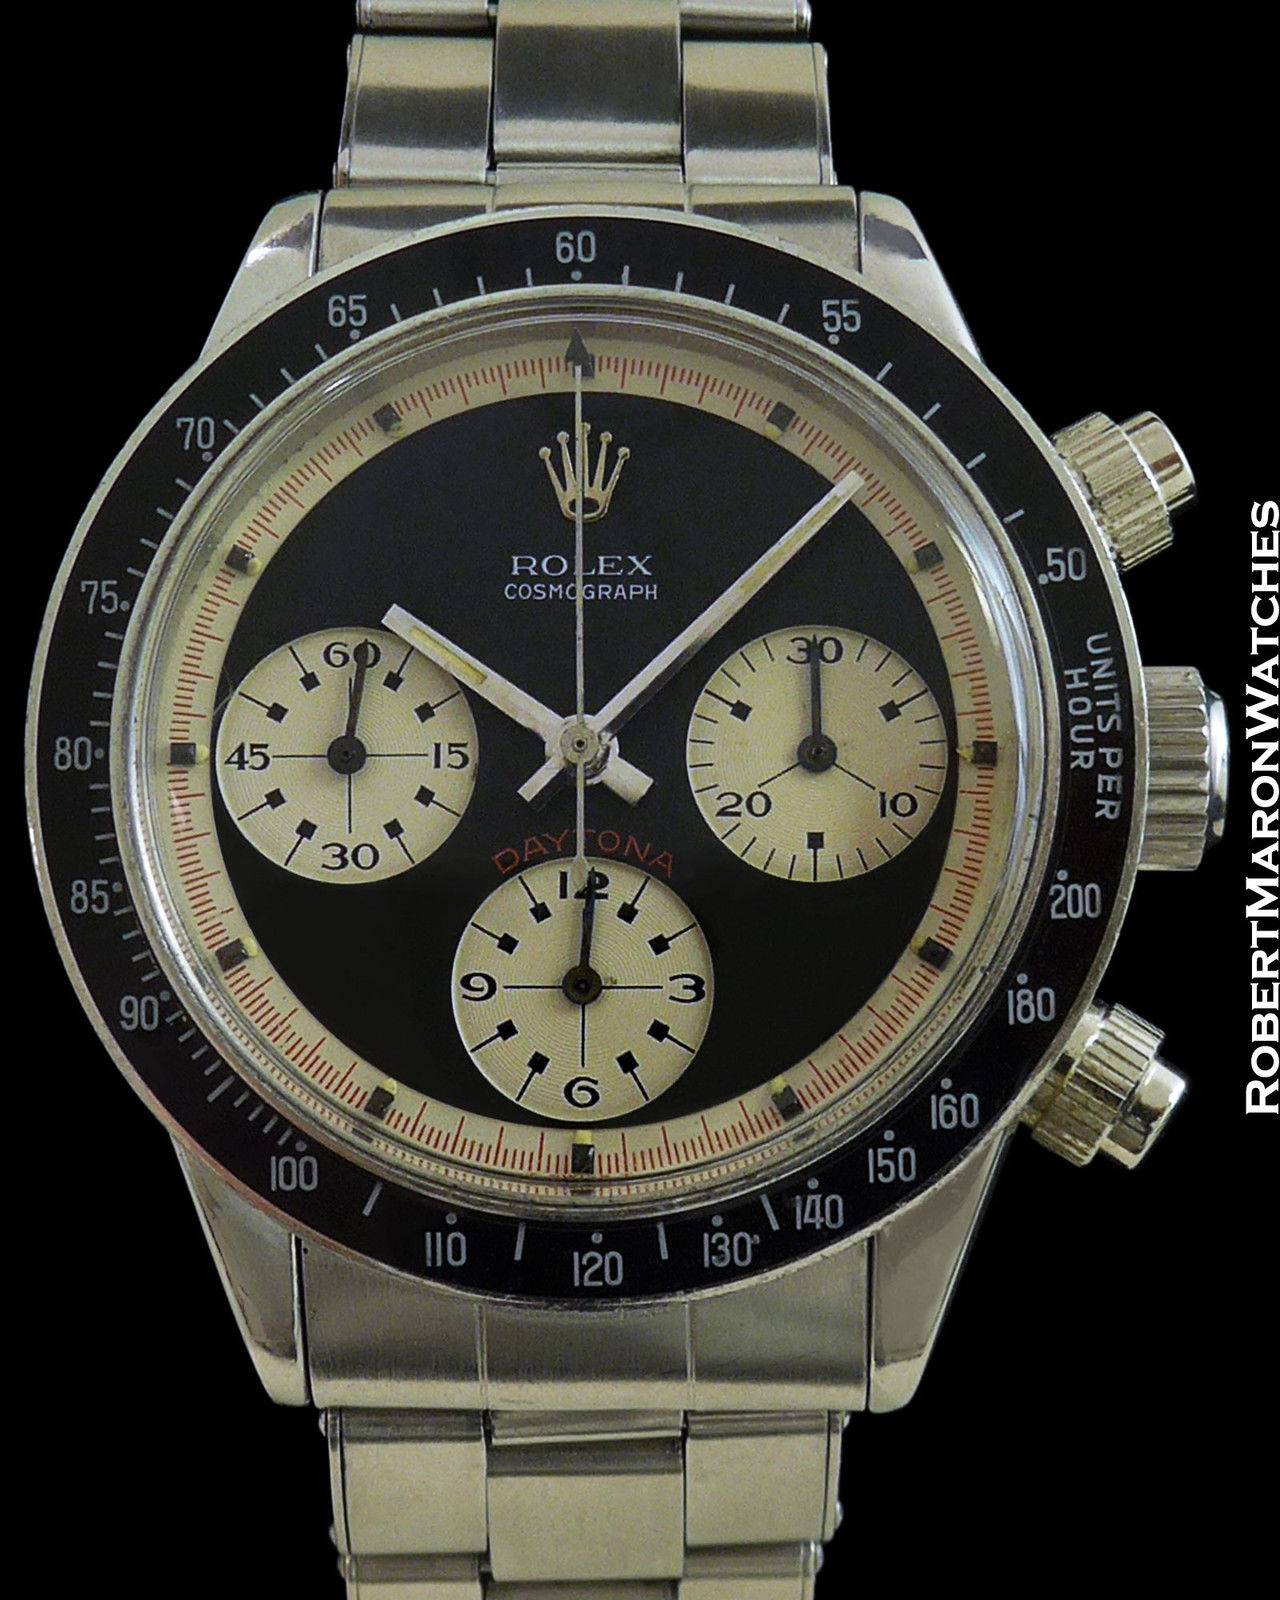 There's a 1965 Rolex Paul Newman Daytona For Sale on eBay Right Now (Yours for a Cool 325,000) There's a 1965 Rolex Paul Newman Daytona For Sale on eBay Right Now (Yours for a Cool 325,000) new photo